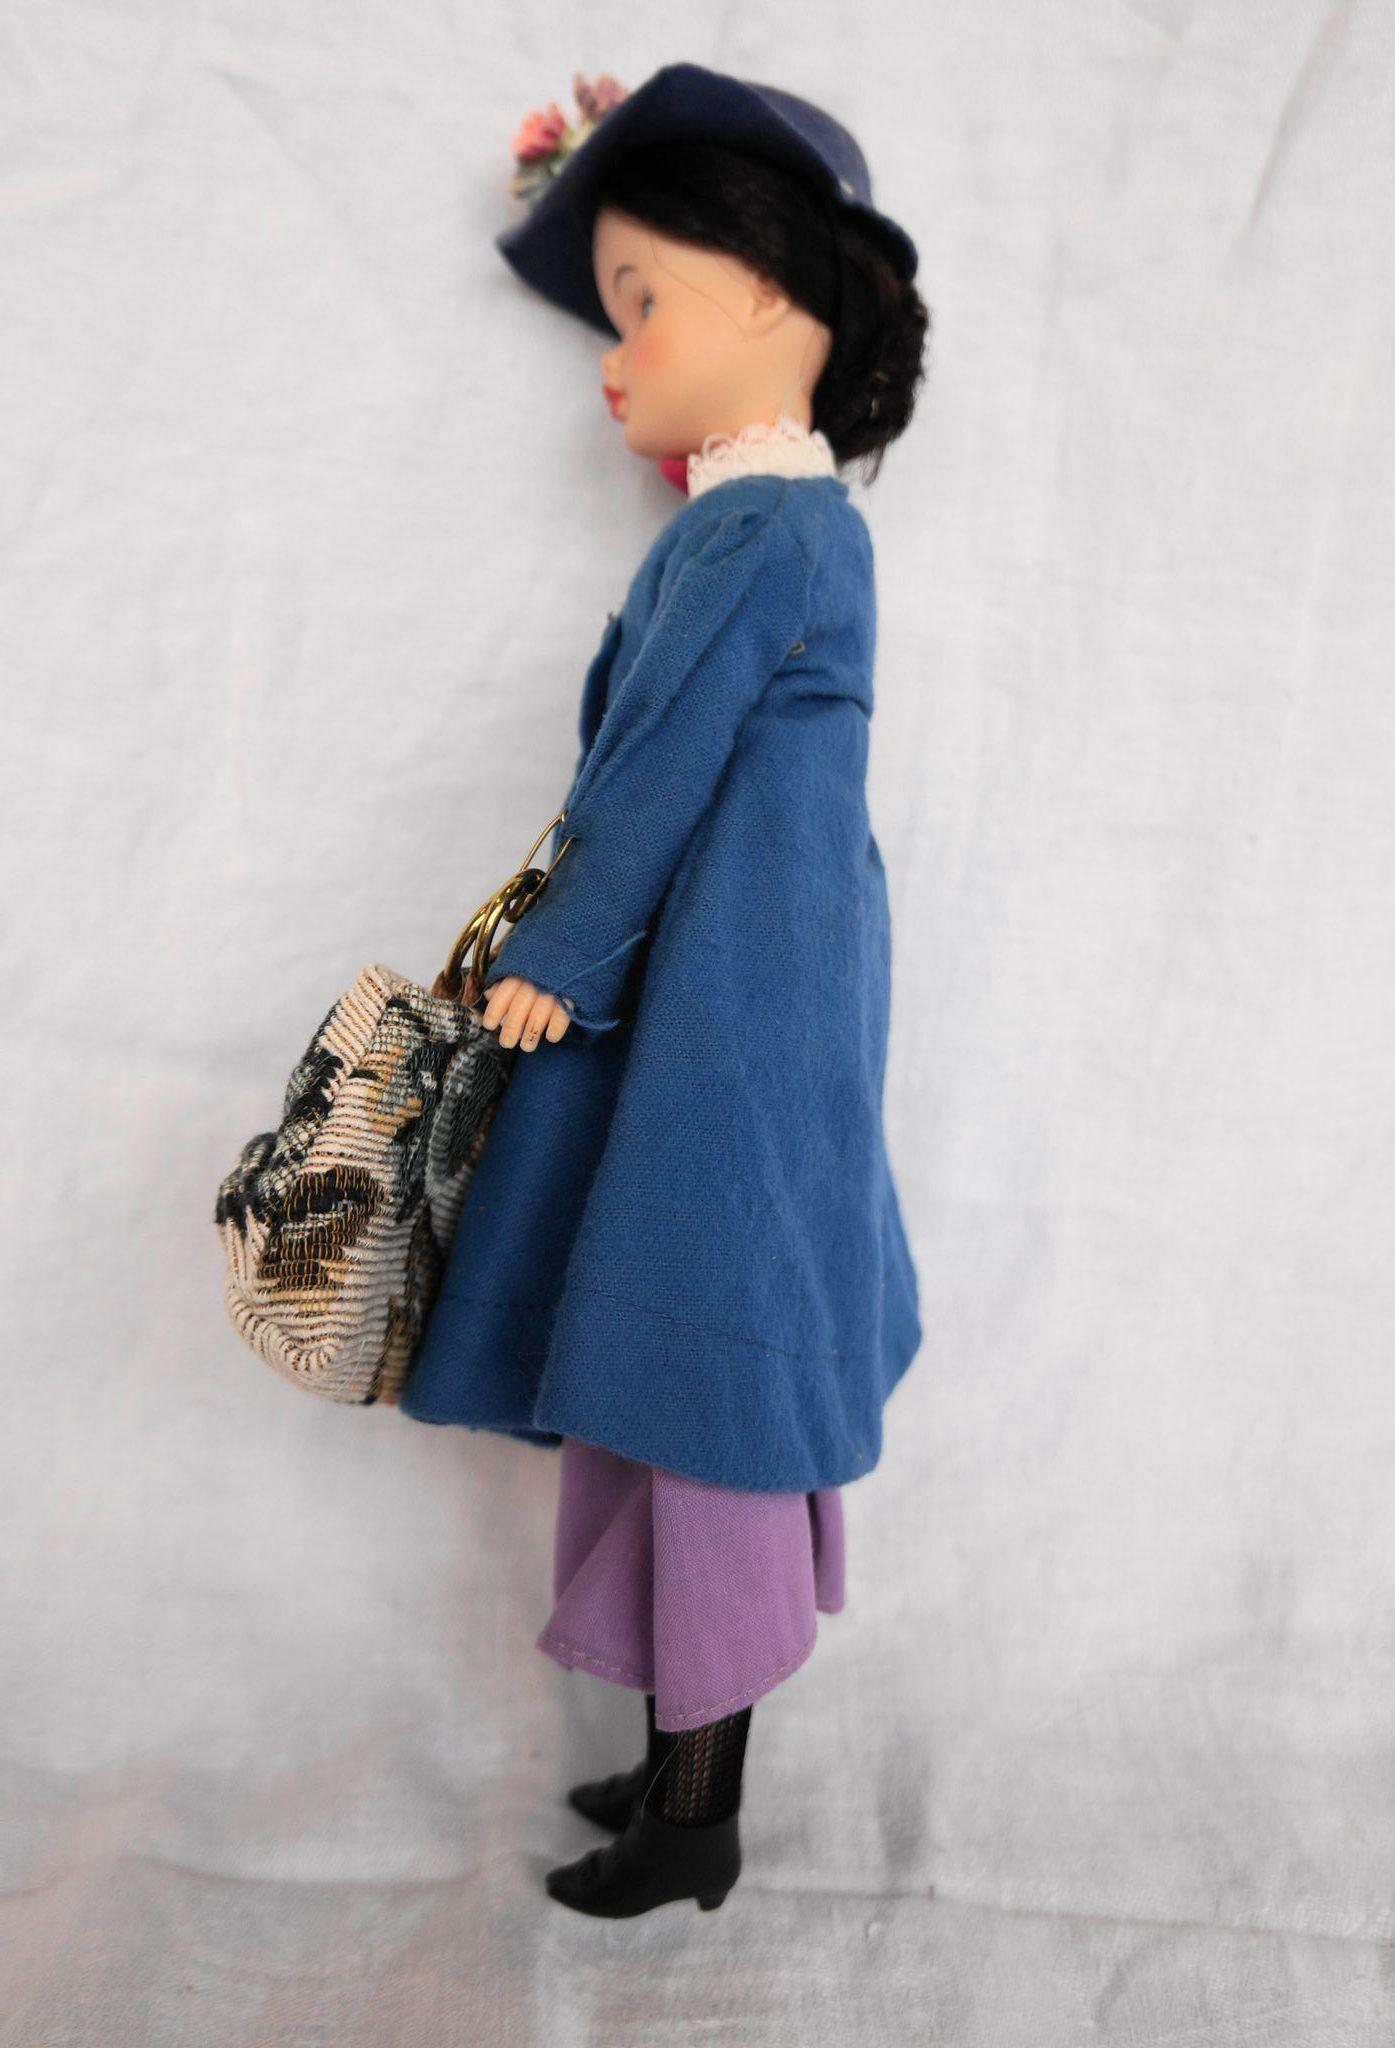 Mary Poppins Disney Horsman Doll 1965 From